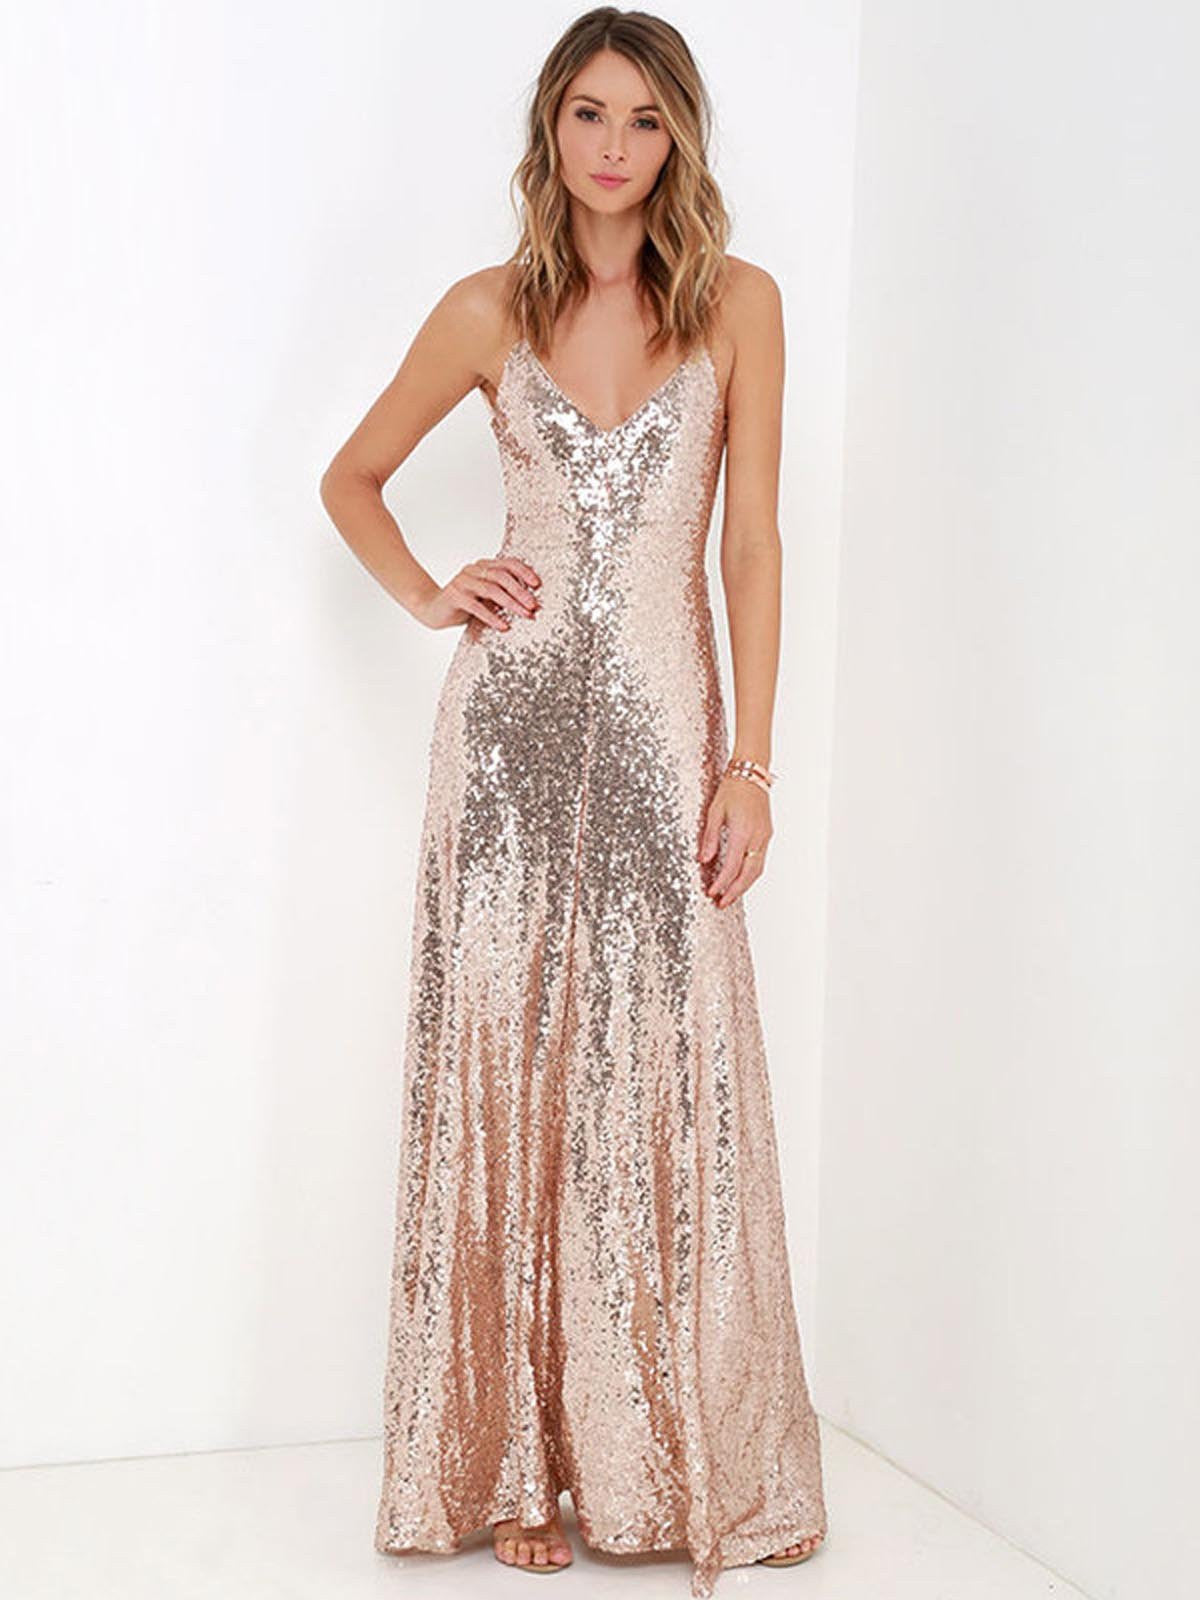 63c1597a1a7 Pink 1920s Backless Sequin Dress – Retro Stage - Chic Vintage ...